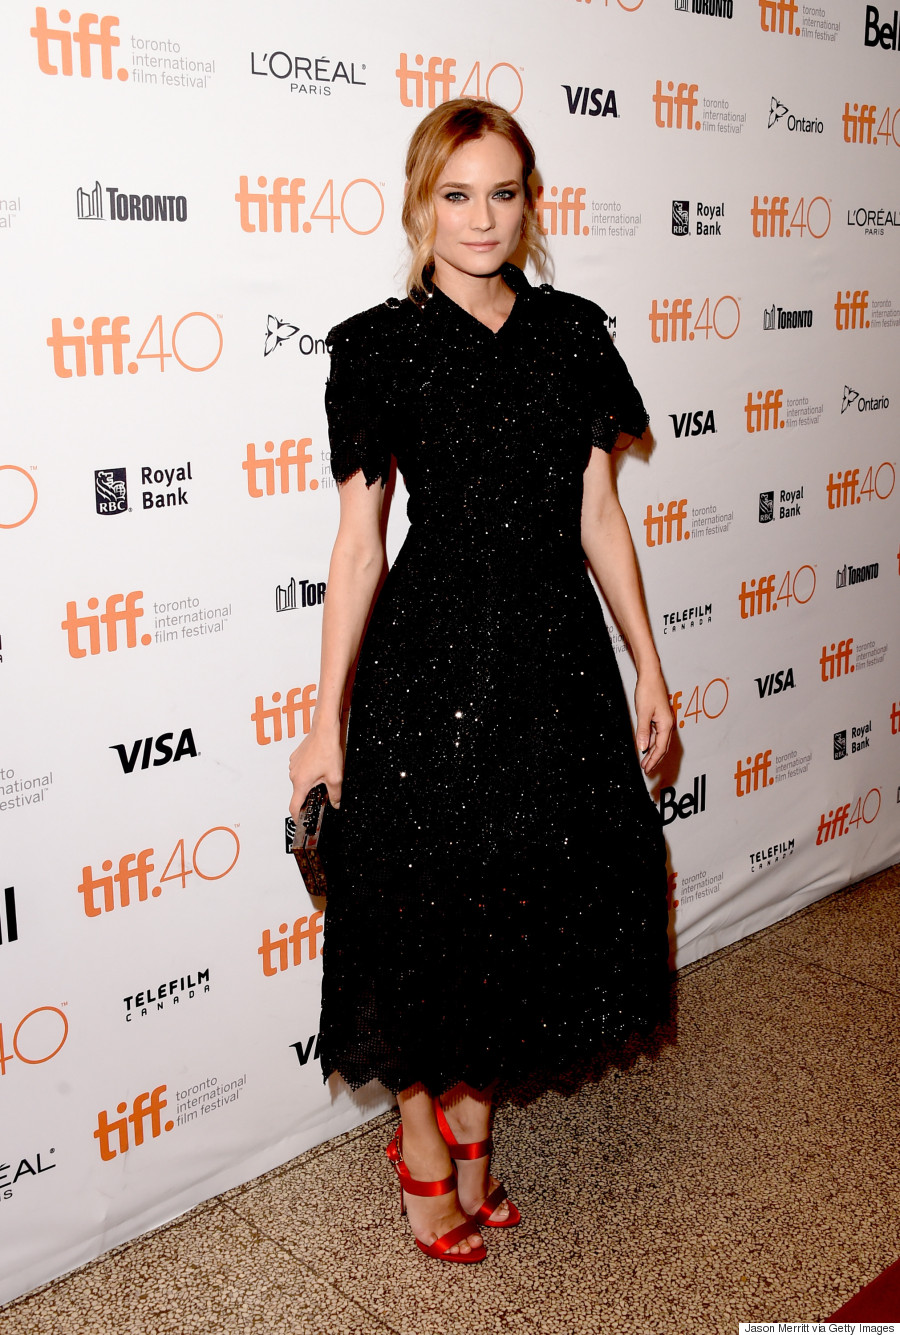 diane-kruger-in-chanel-couture-sky-toronto-film-festival-photocall